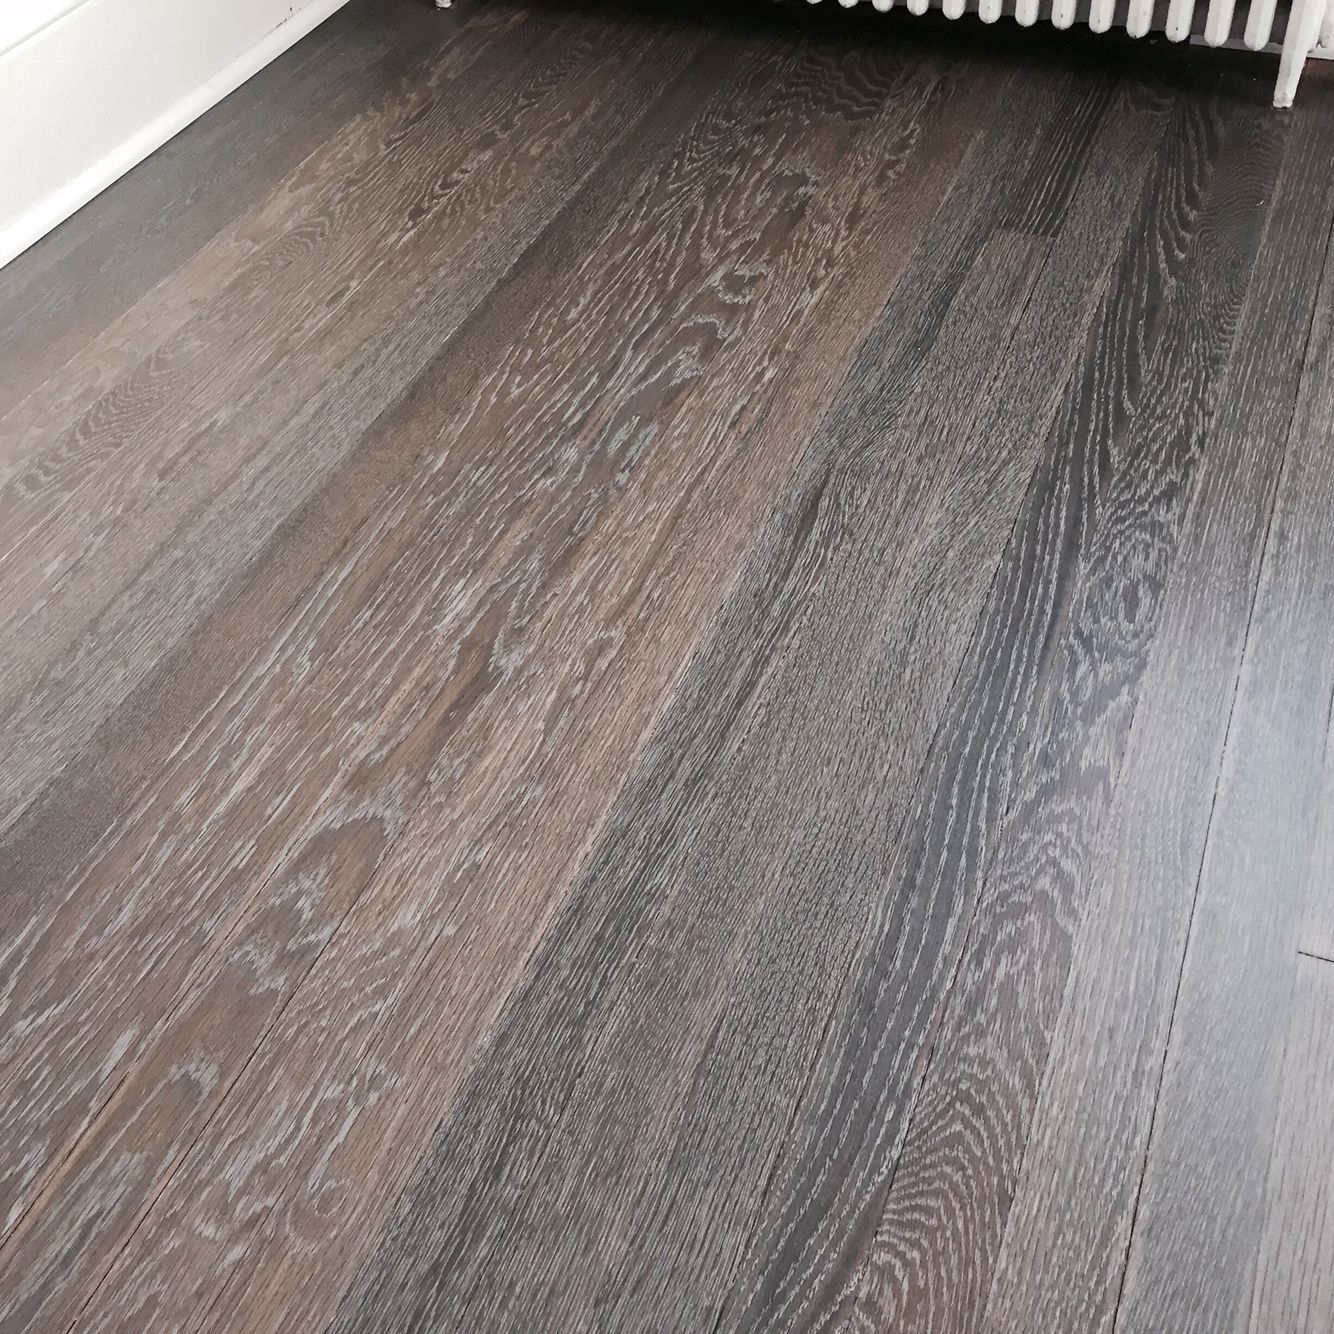 Refinished White Oak Floors With Rubio Fumed And Rubio 5